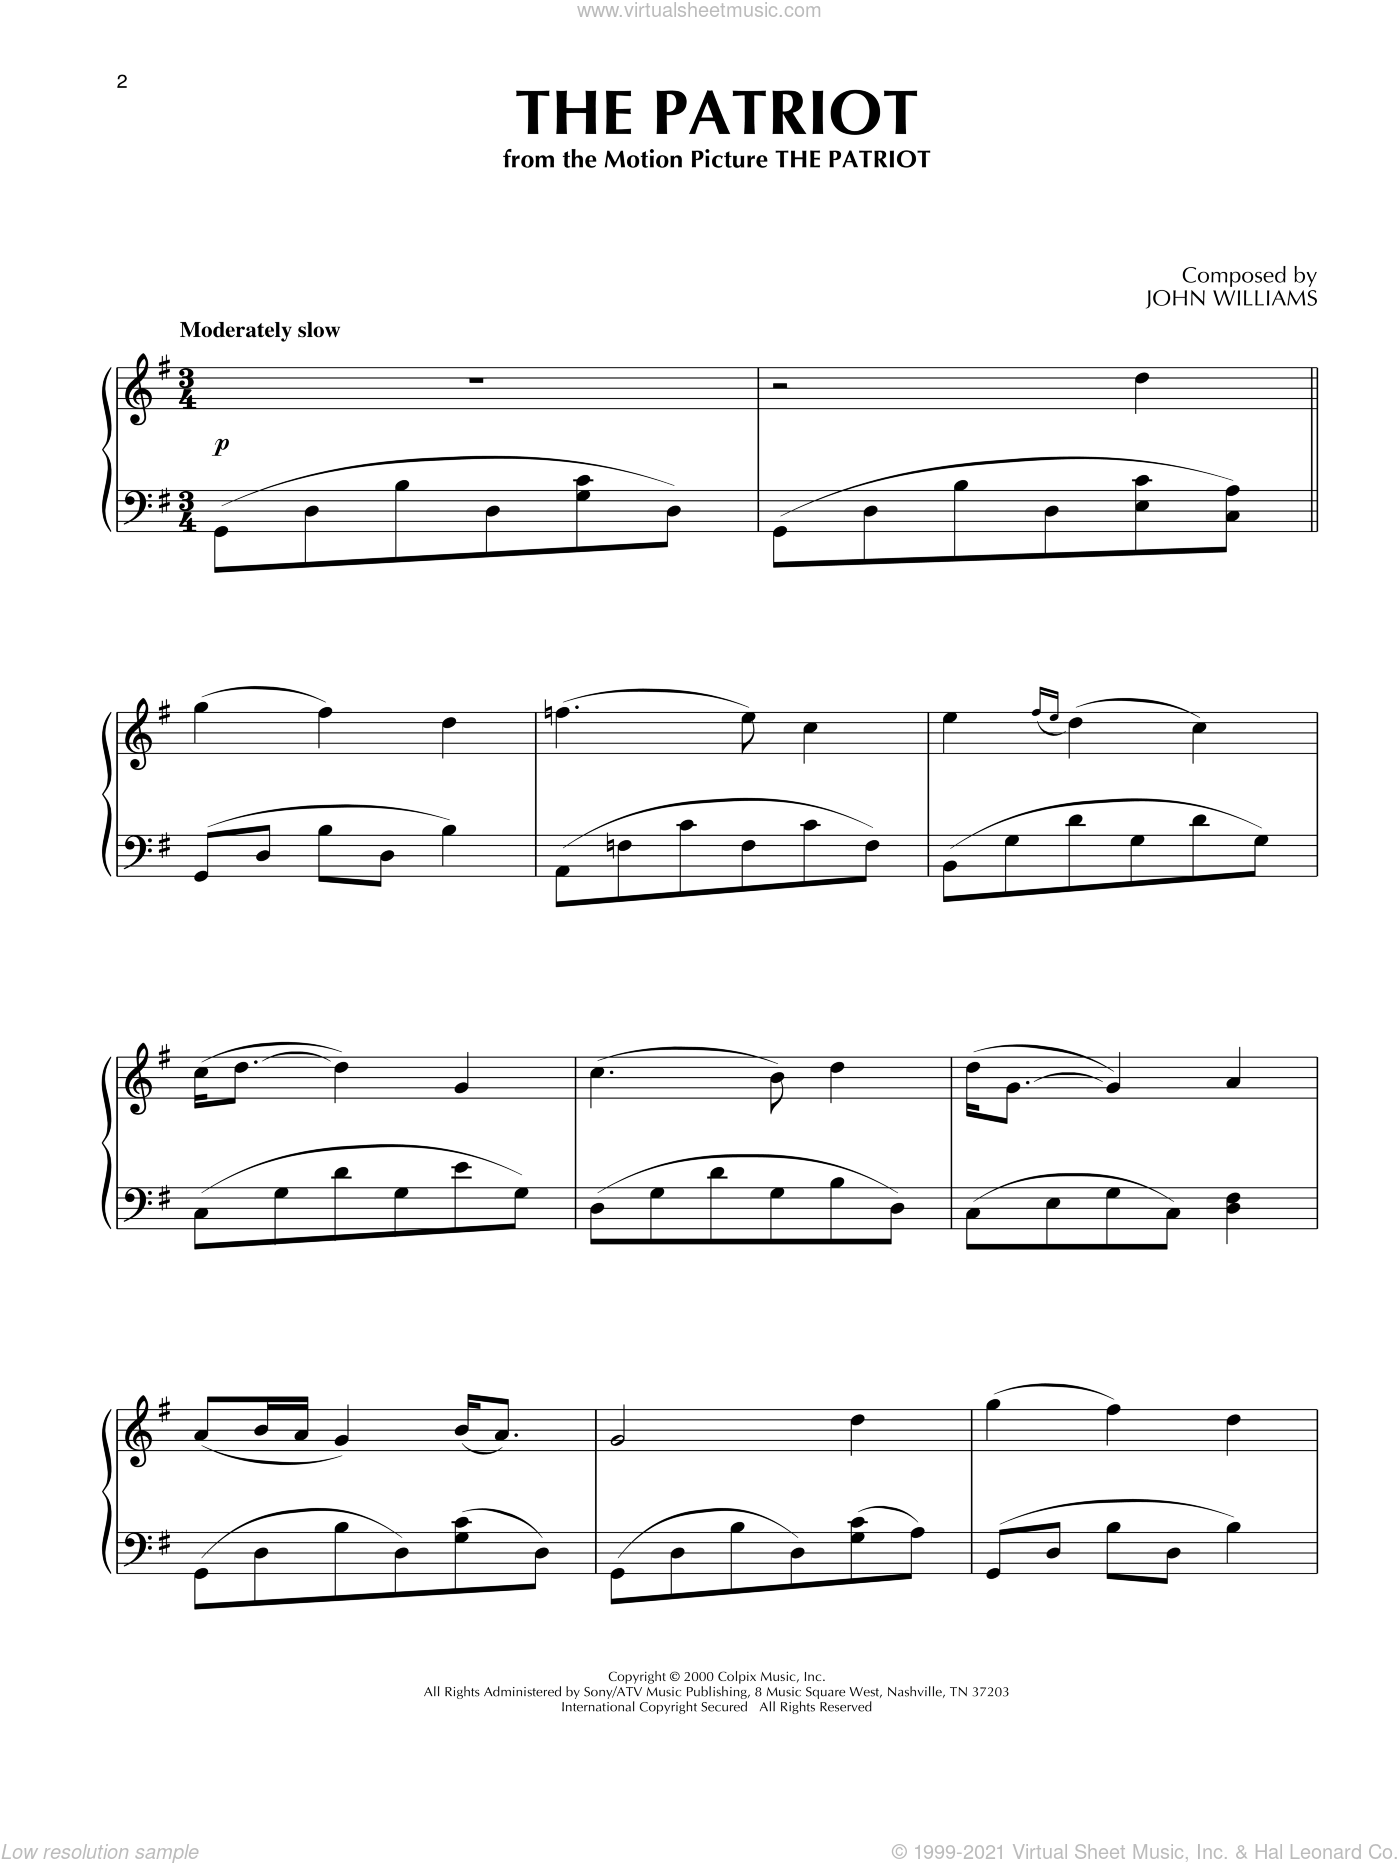 The Patriot sheet music for piano solo by John Williams, intermediate skill level